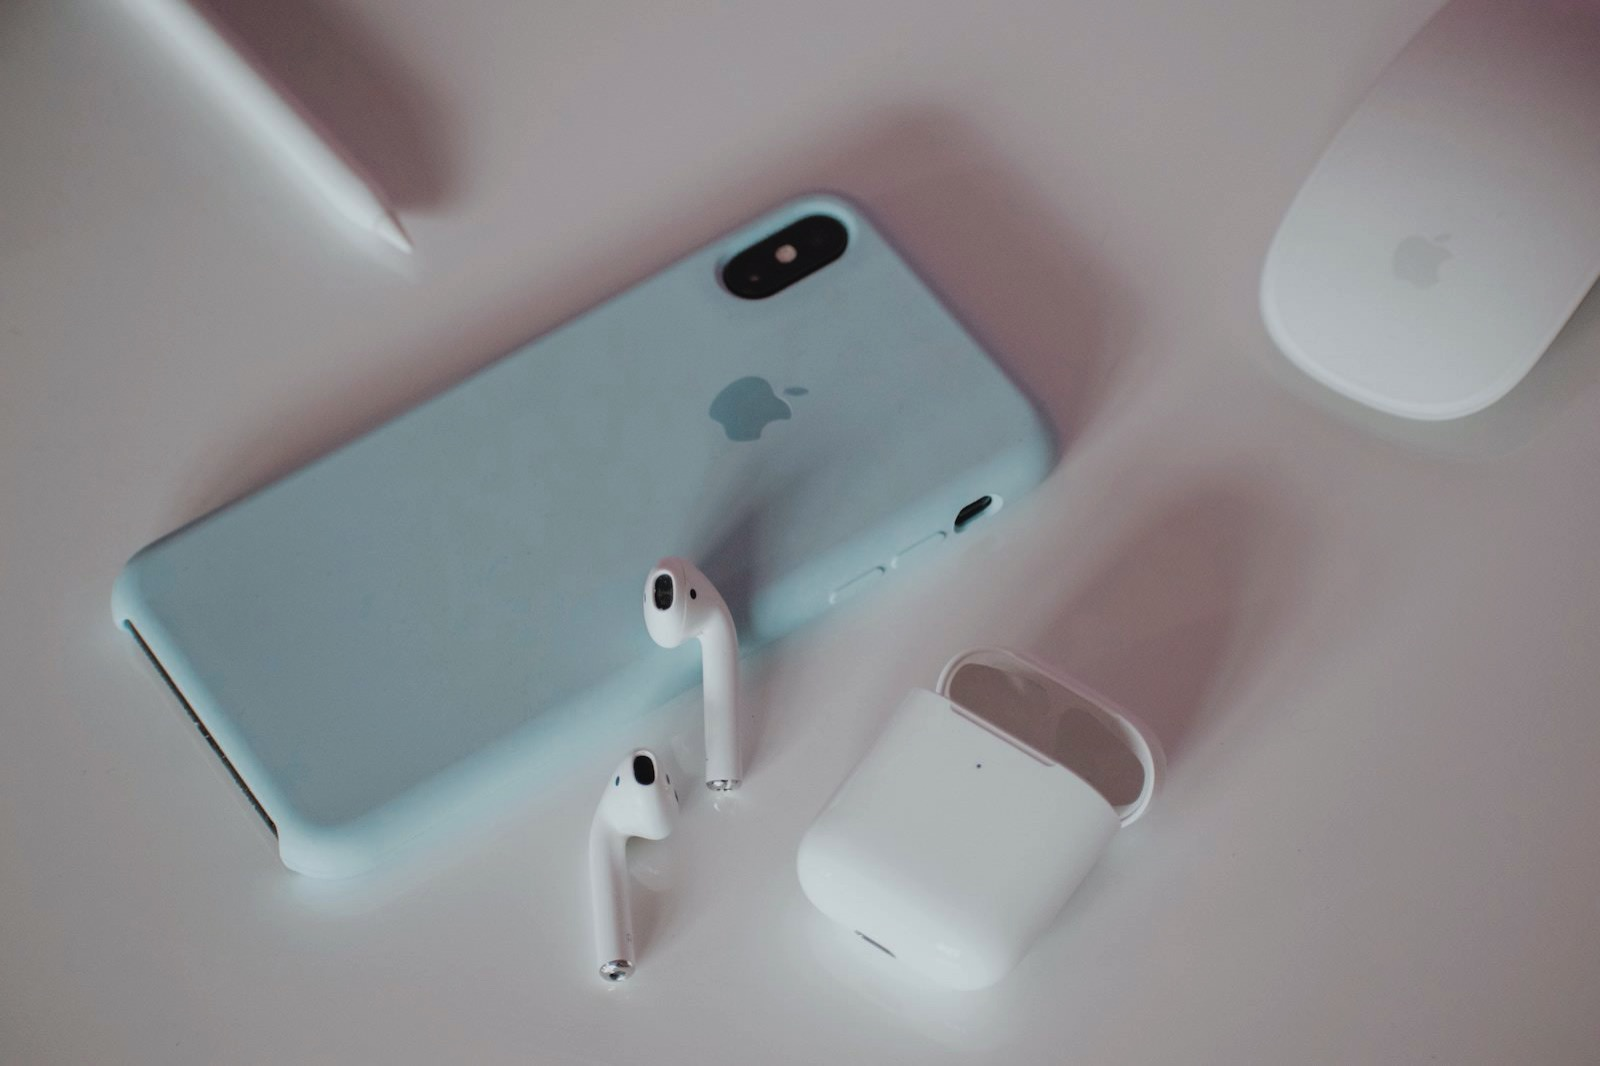 Alexandar todov vDTgx5wJwao unsplash airpods and iphone